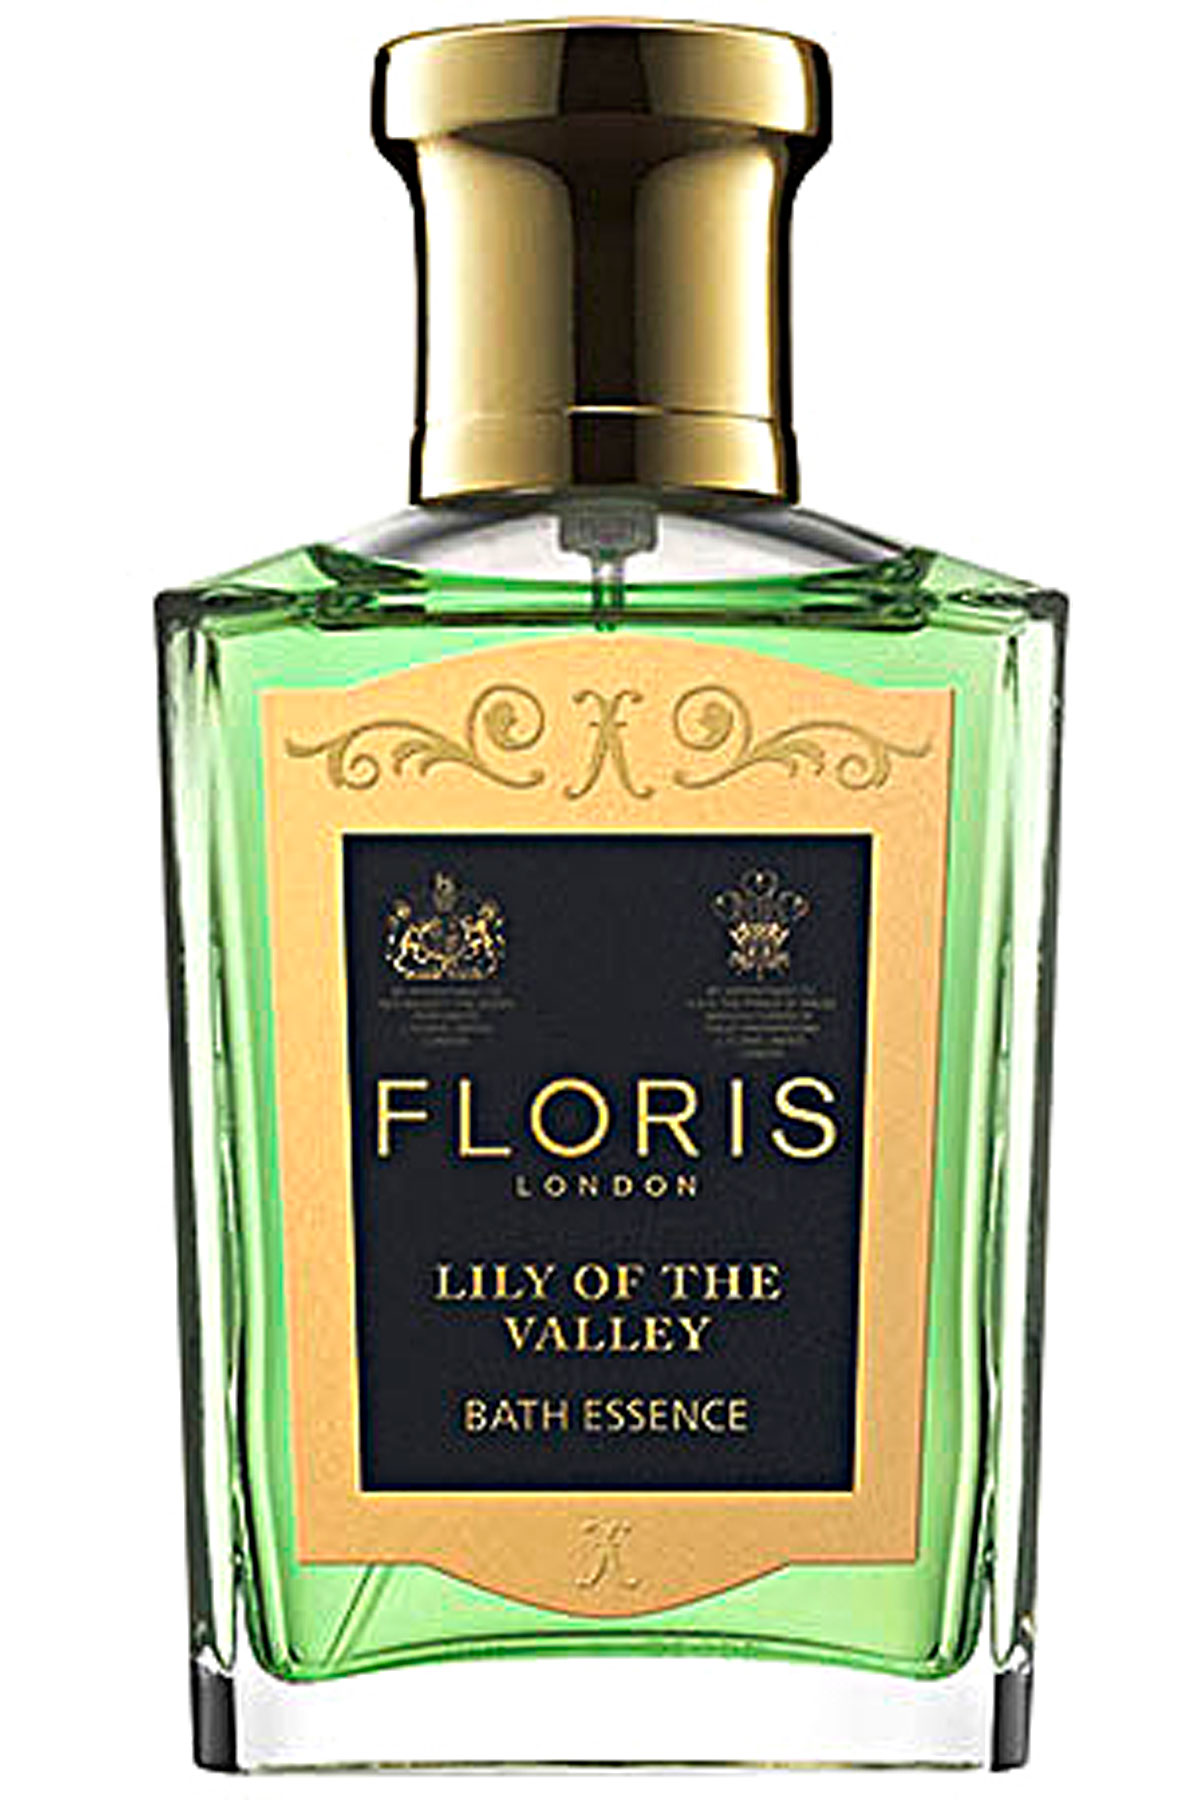 Floris London Beauty for Women On Sale, Lily Of The Valley - Bath Essence - 50 Ml, 2019, 50 ml